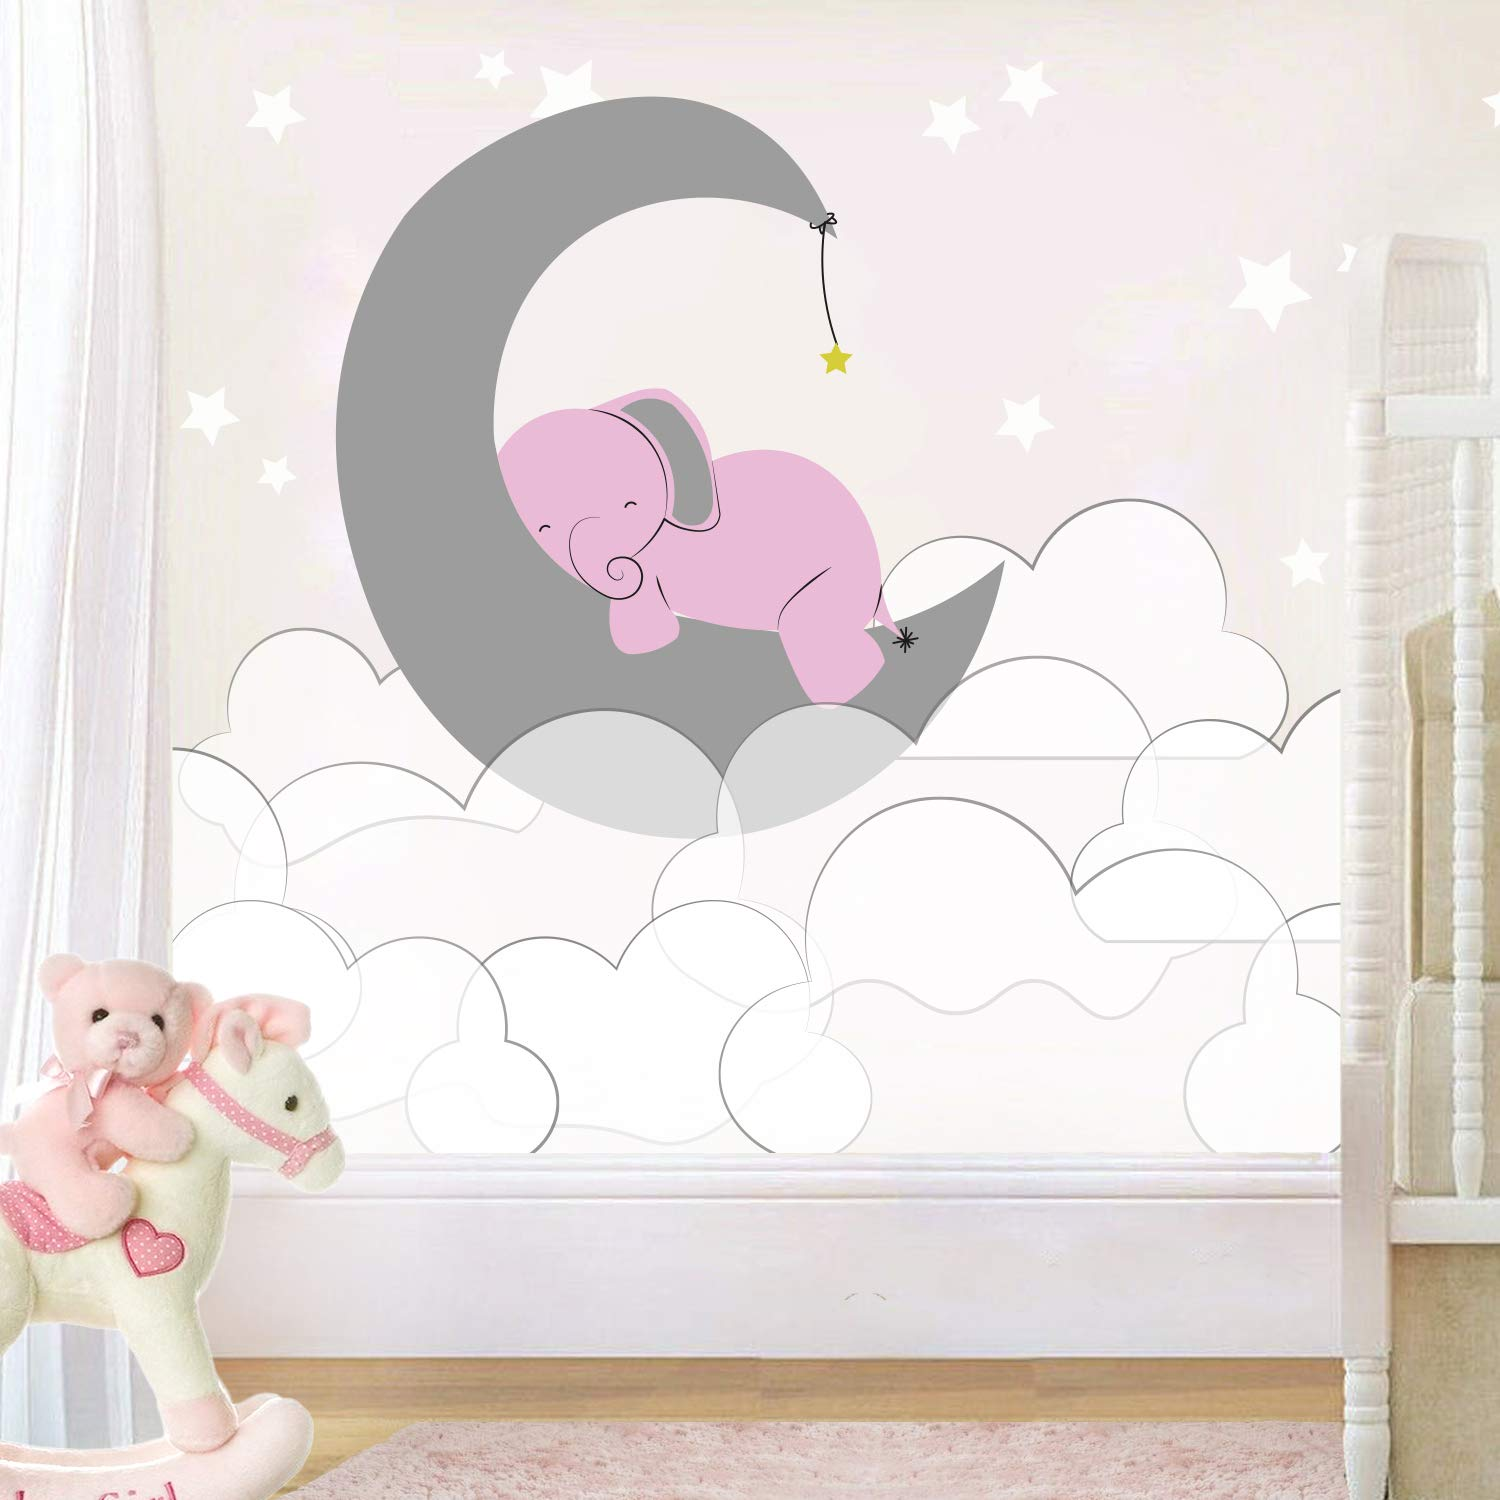 e-Graphic Design Inc Elephant Moon Clouds and Stars - Baby Girl - Nursery Wall Decal for Baby ROM Decorations - Mural Wall Decal Sticker for Home Children's Bedroom (J236) (Wide 44''x24'' Height) by e-Graphic Design Inc